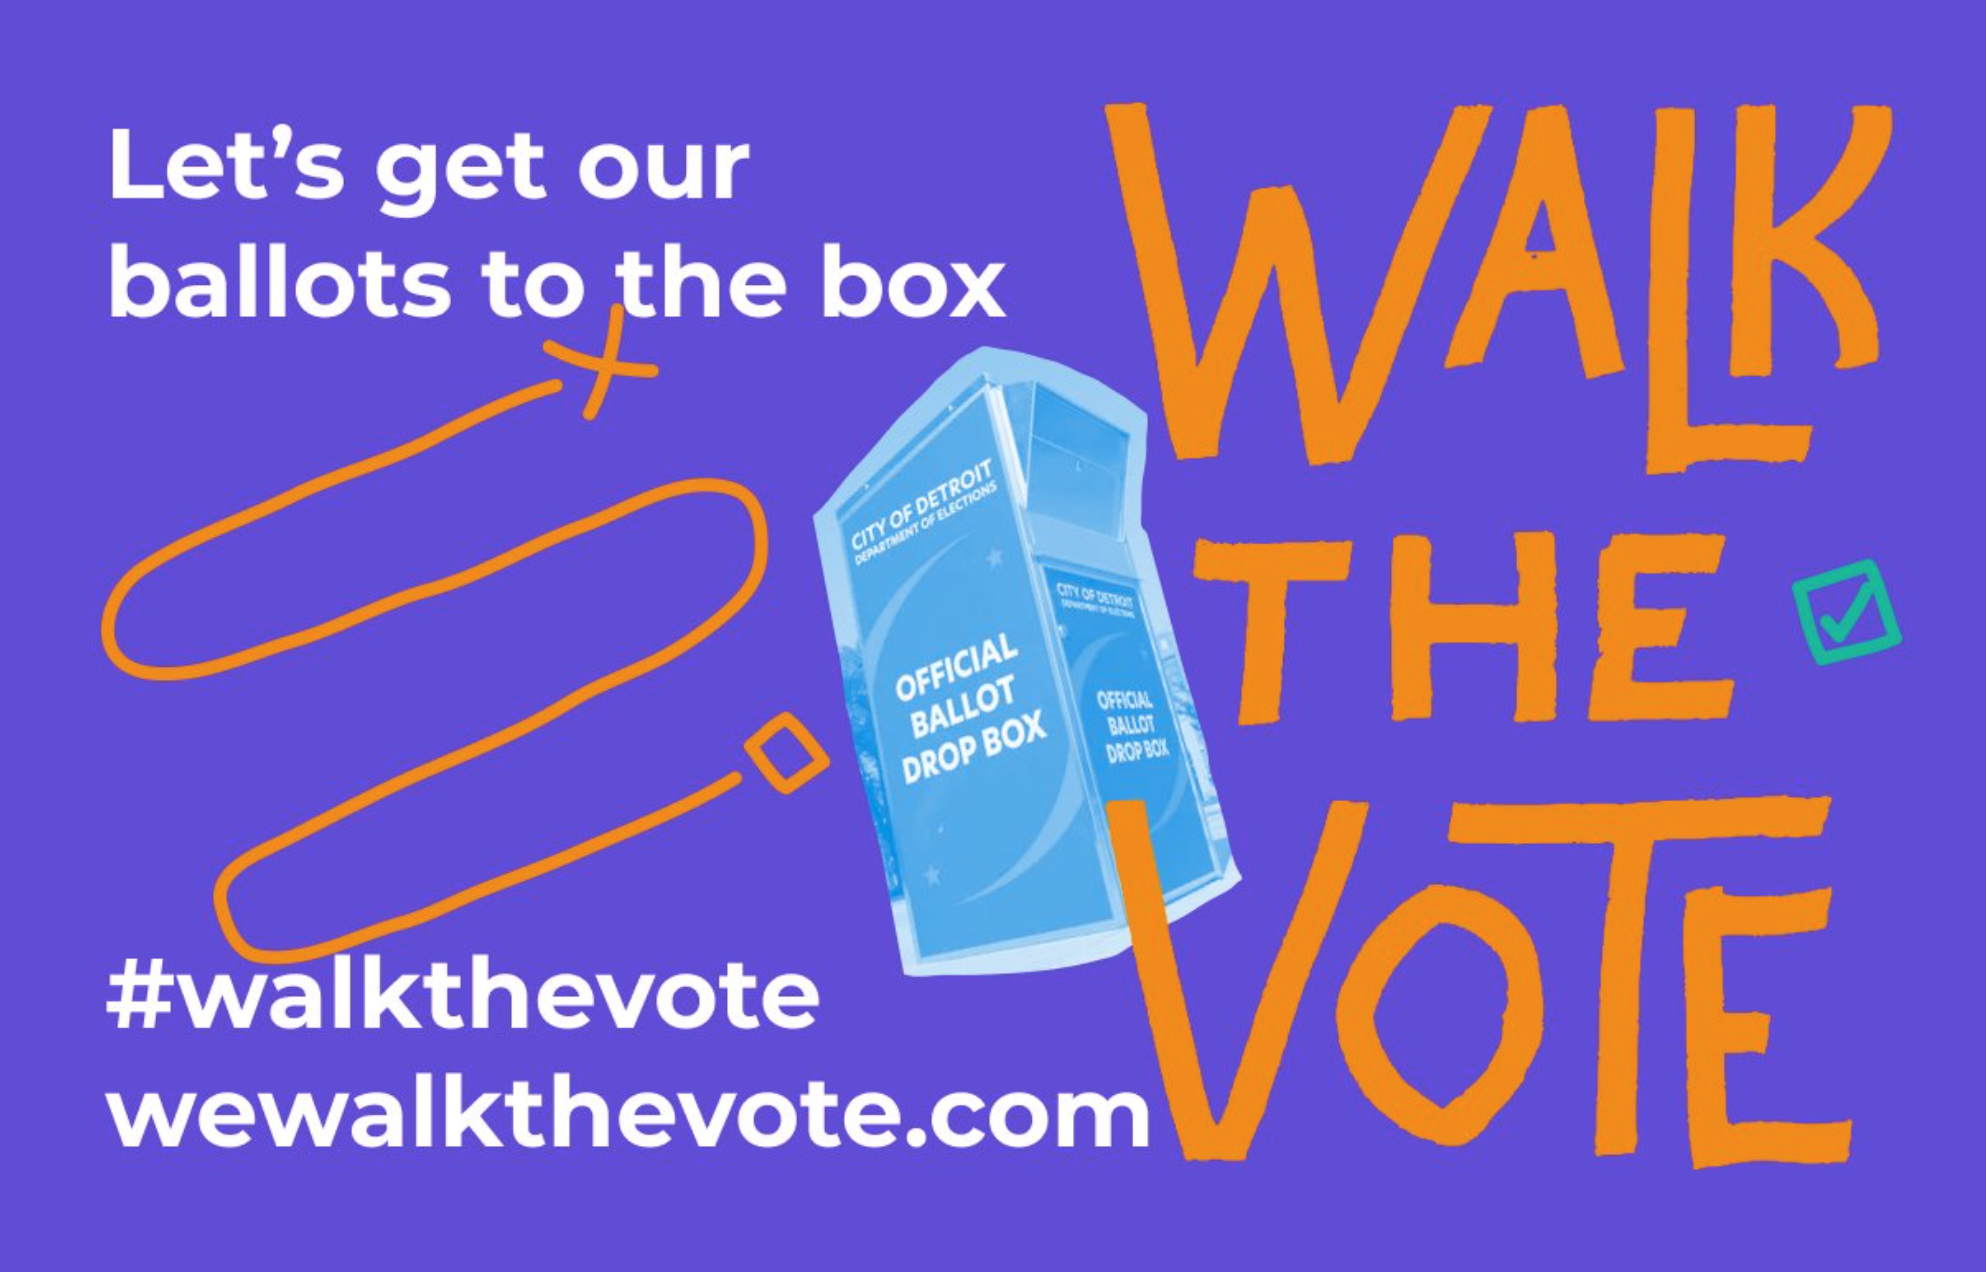 Need some fresh air? Take your vote with you and #walkthevote!